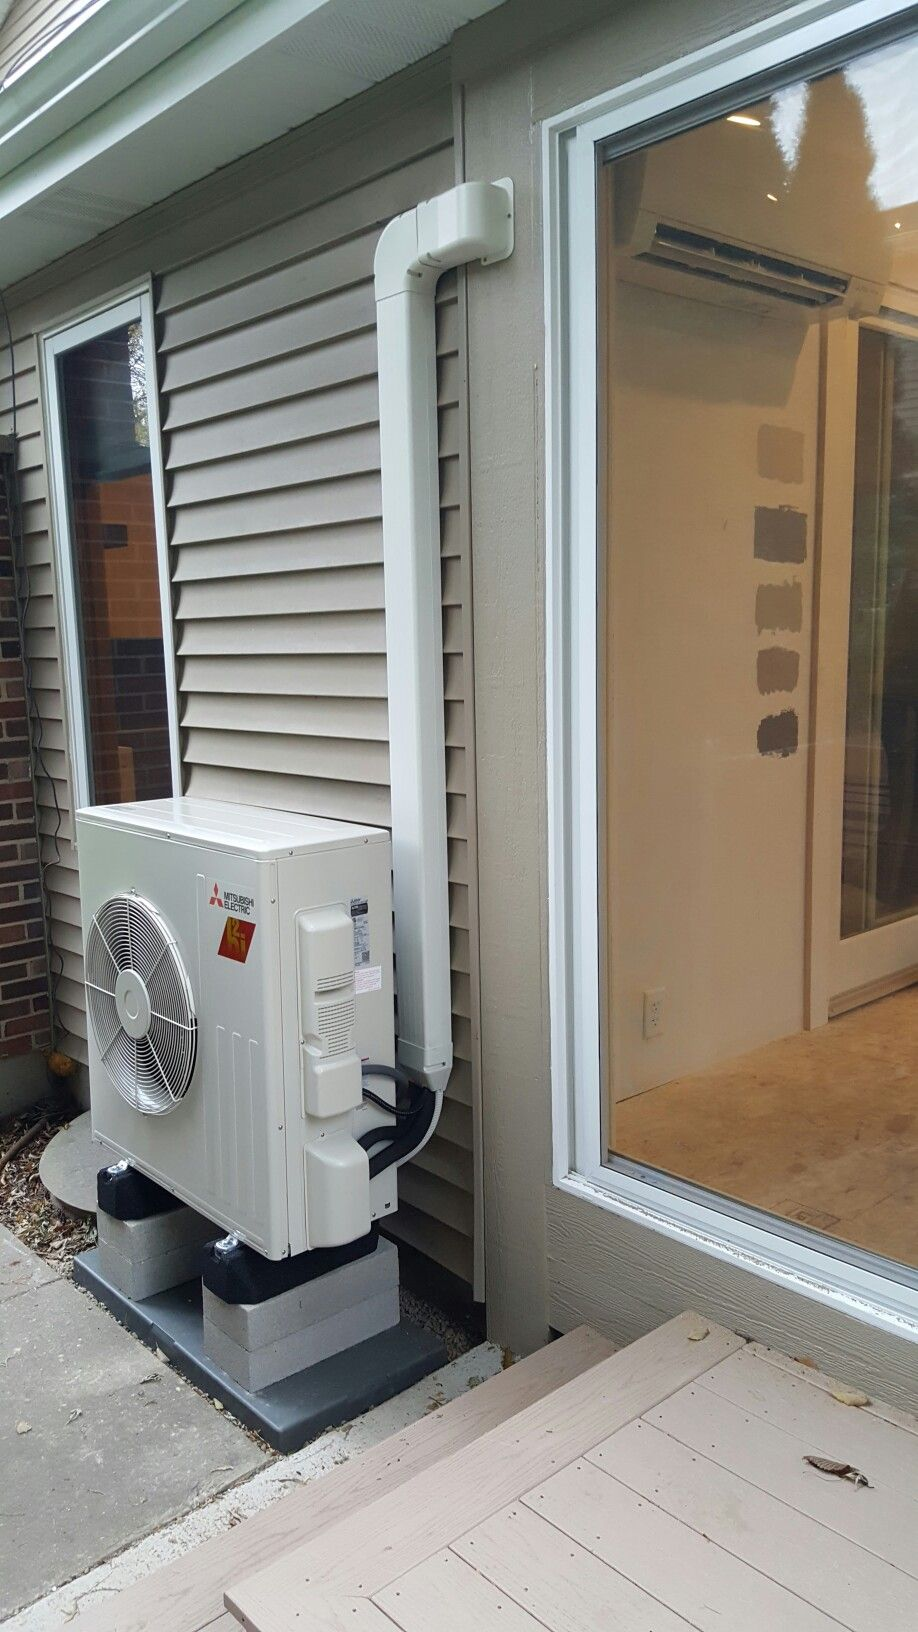 Sunroom Addition Being Heated And Cooled With A Mitsubishi Hyper Heat  Ductless Heat Pump. Installed By Compass Heating And Air Conditioning, Inc.